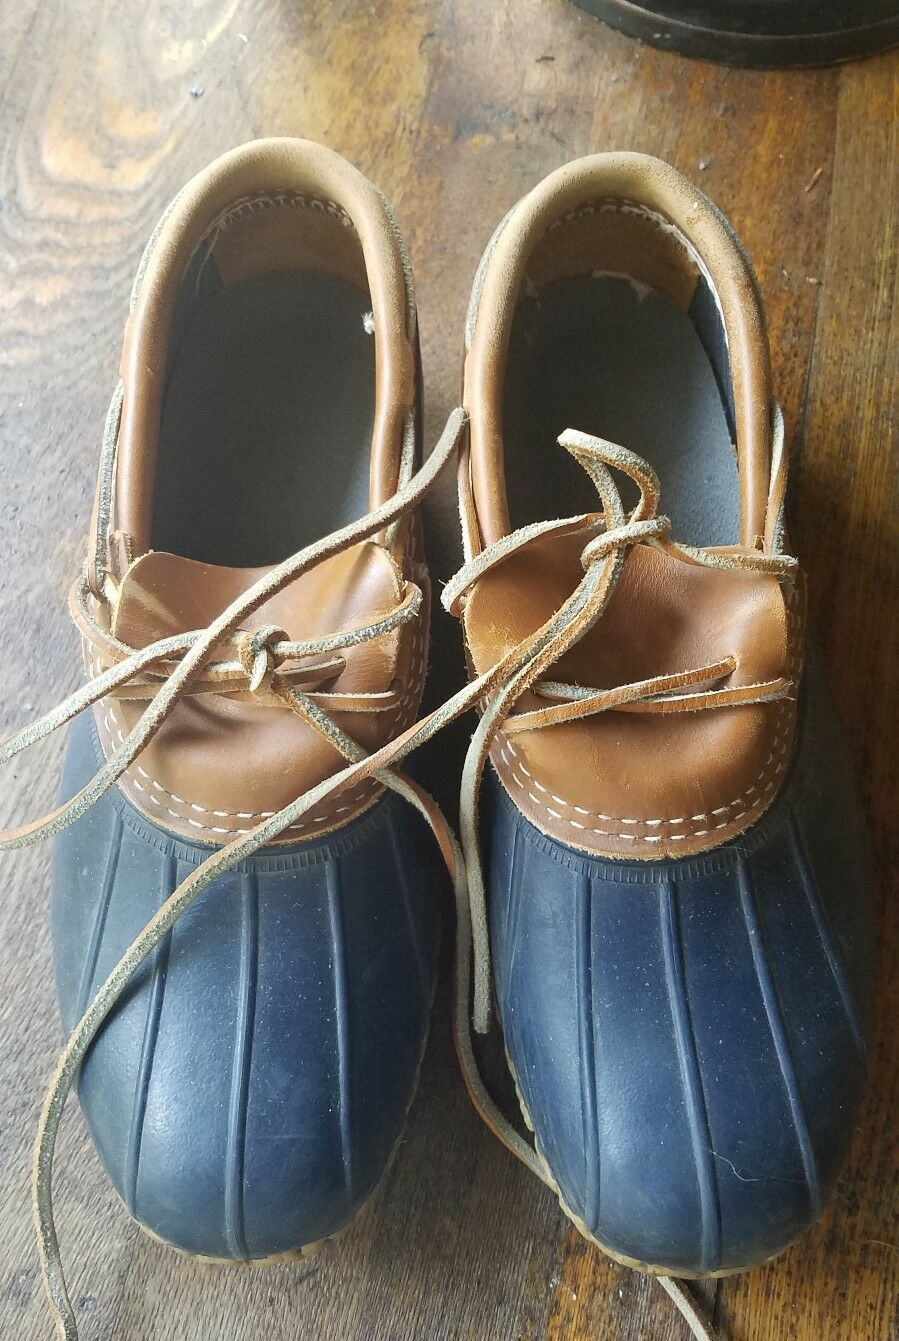 LL Bean boots bluee womens used size 8 very good